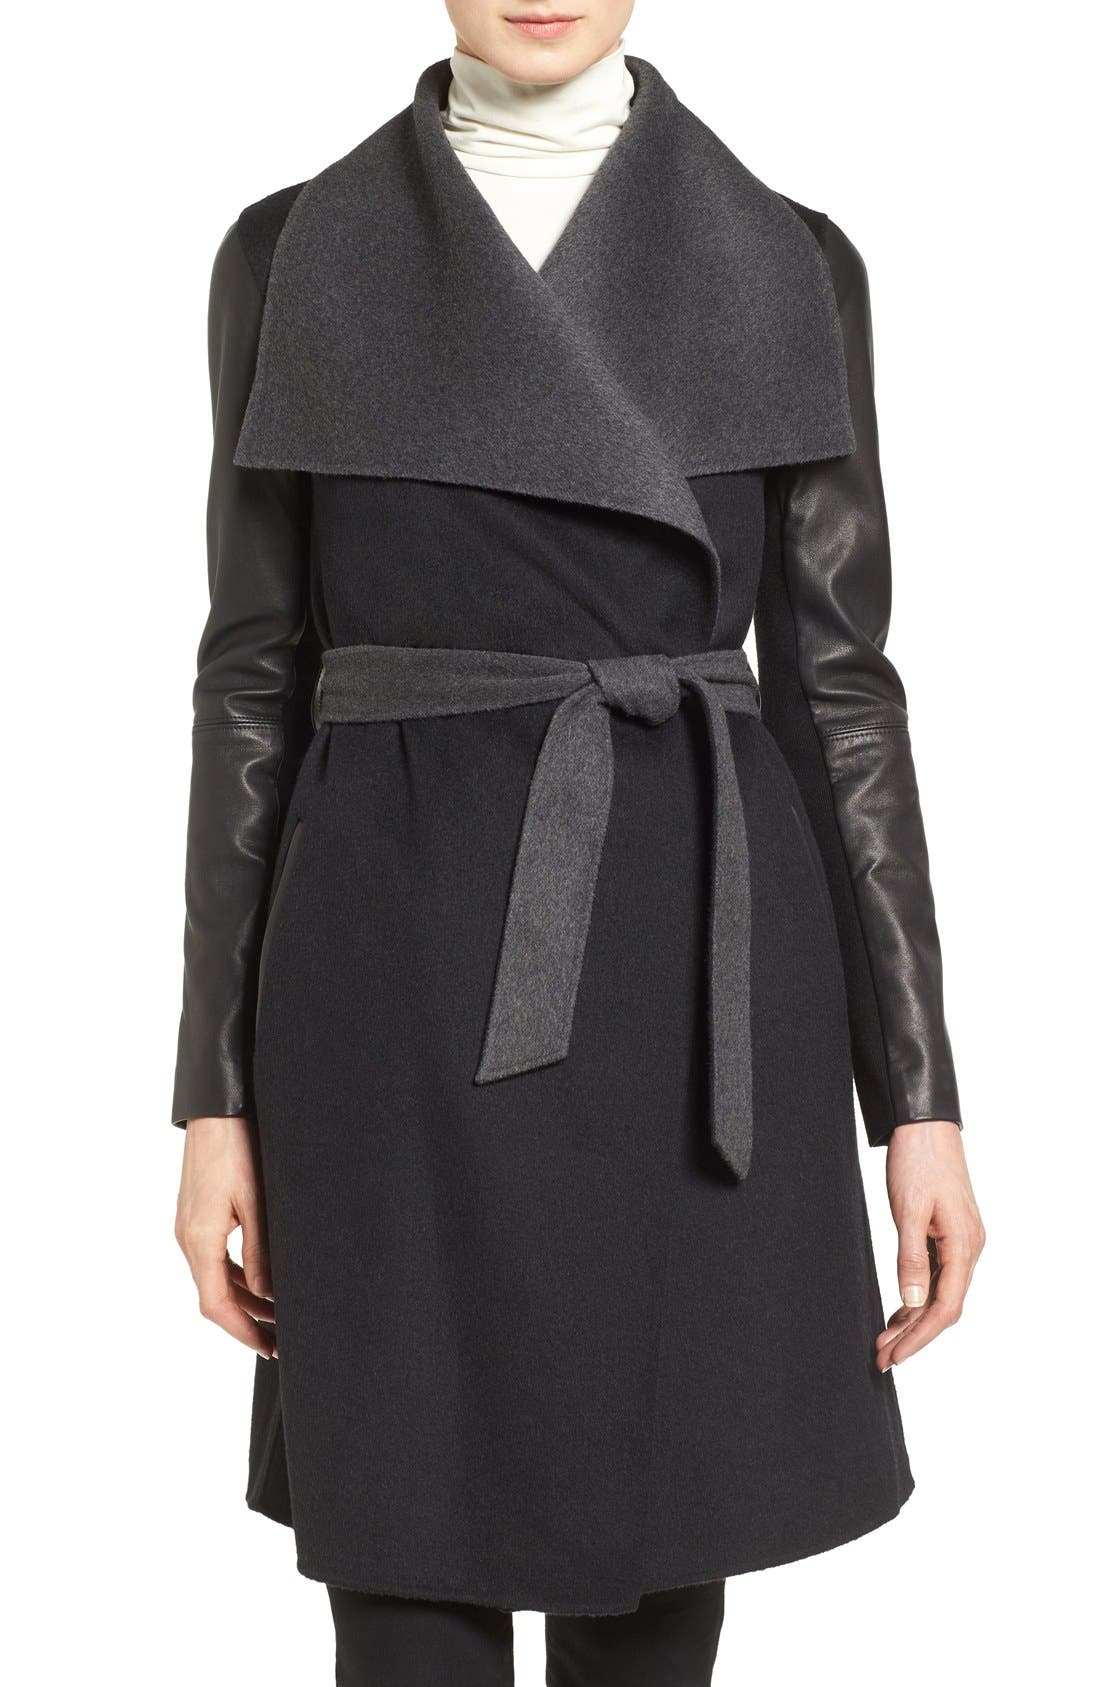 MACKAGE,                             Leather Sleeve Wool Blend Wrap Coat,                             Main thumbnail 1, color,                             001